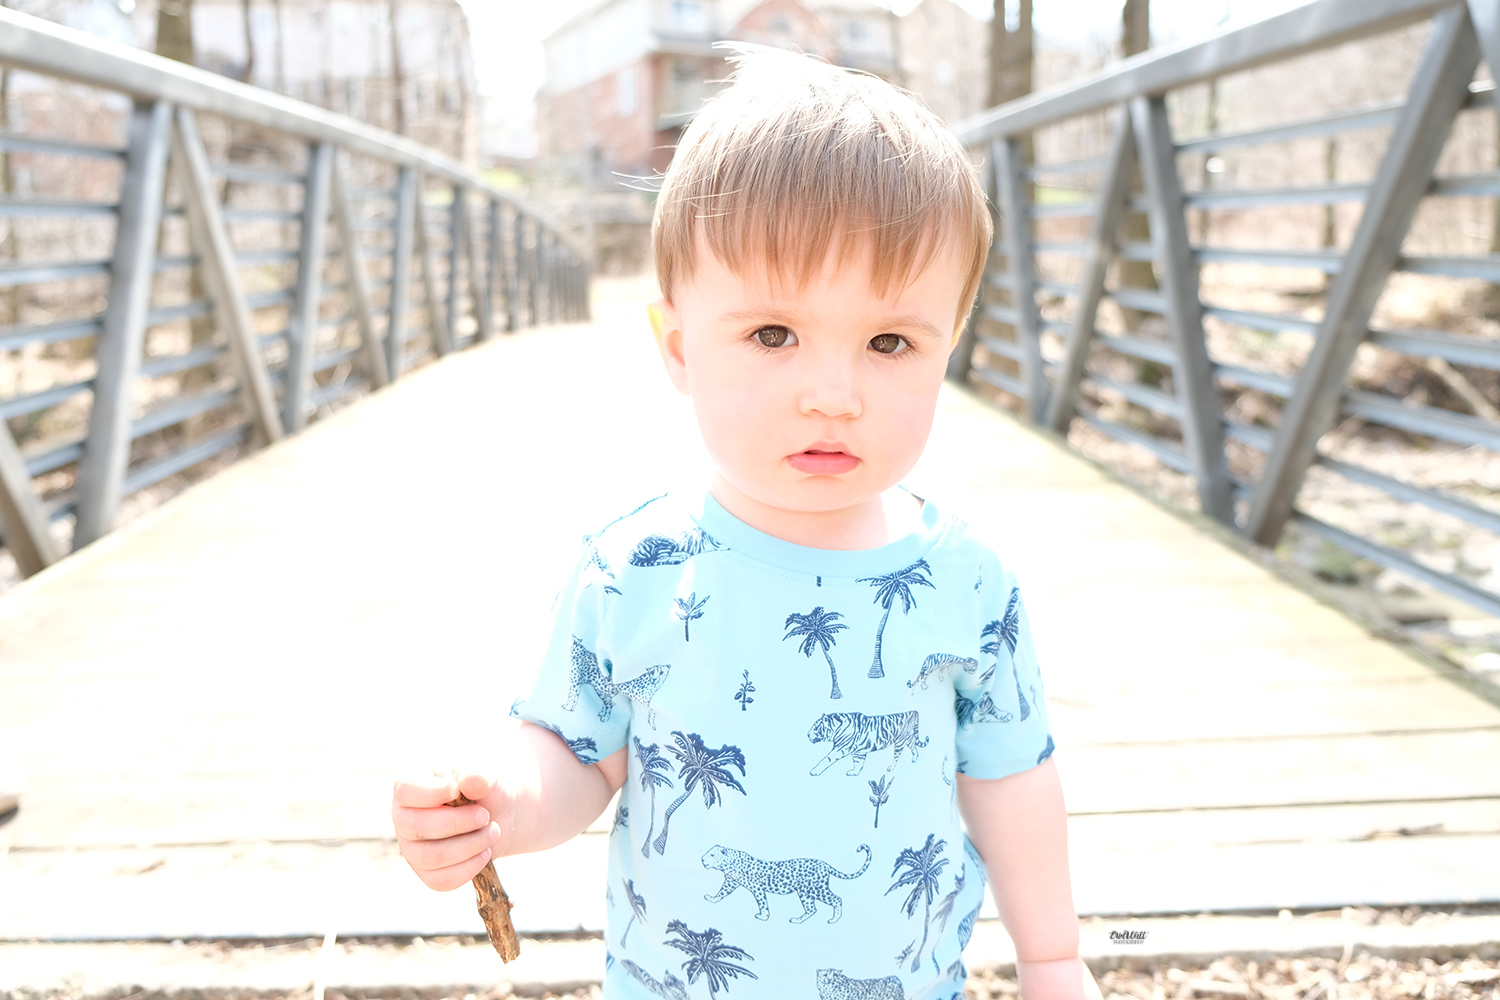 Child at the end of a walking bridge on a sunny day looking serious Family photography Kitchener-Waterloo